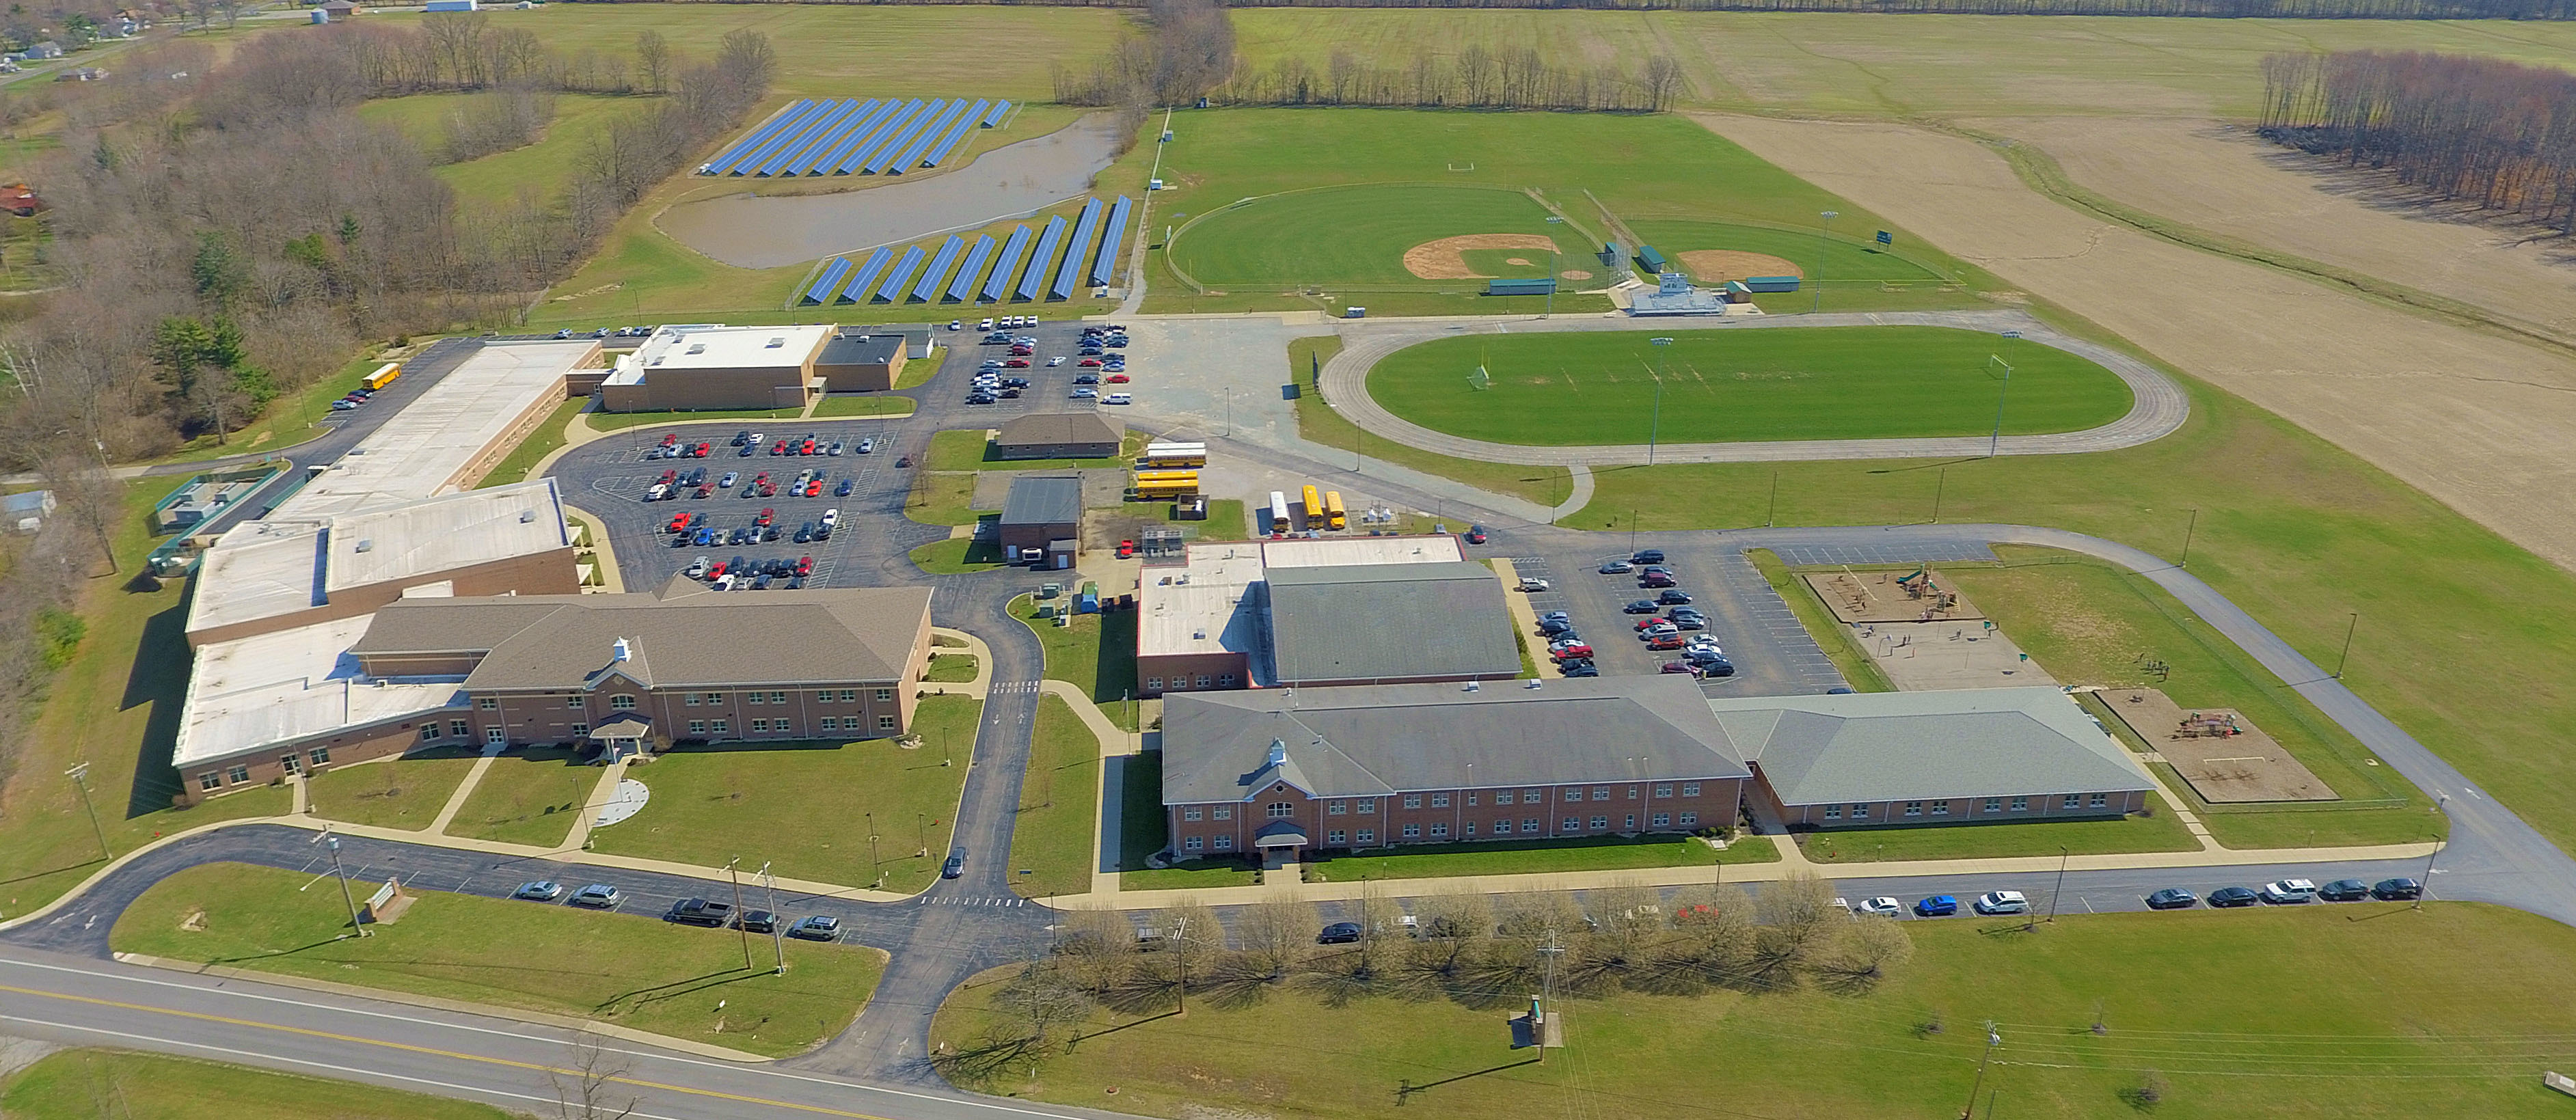 Aerial Photo Of School